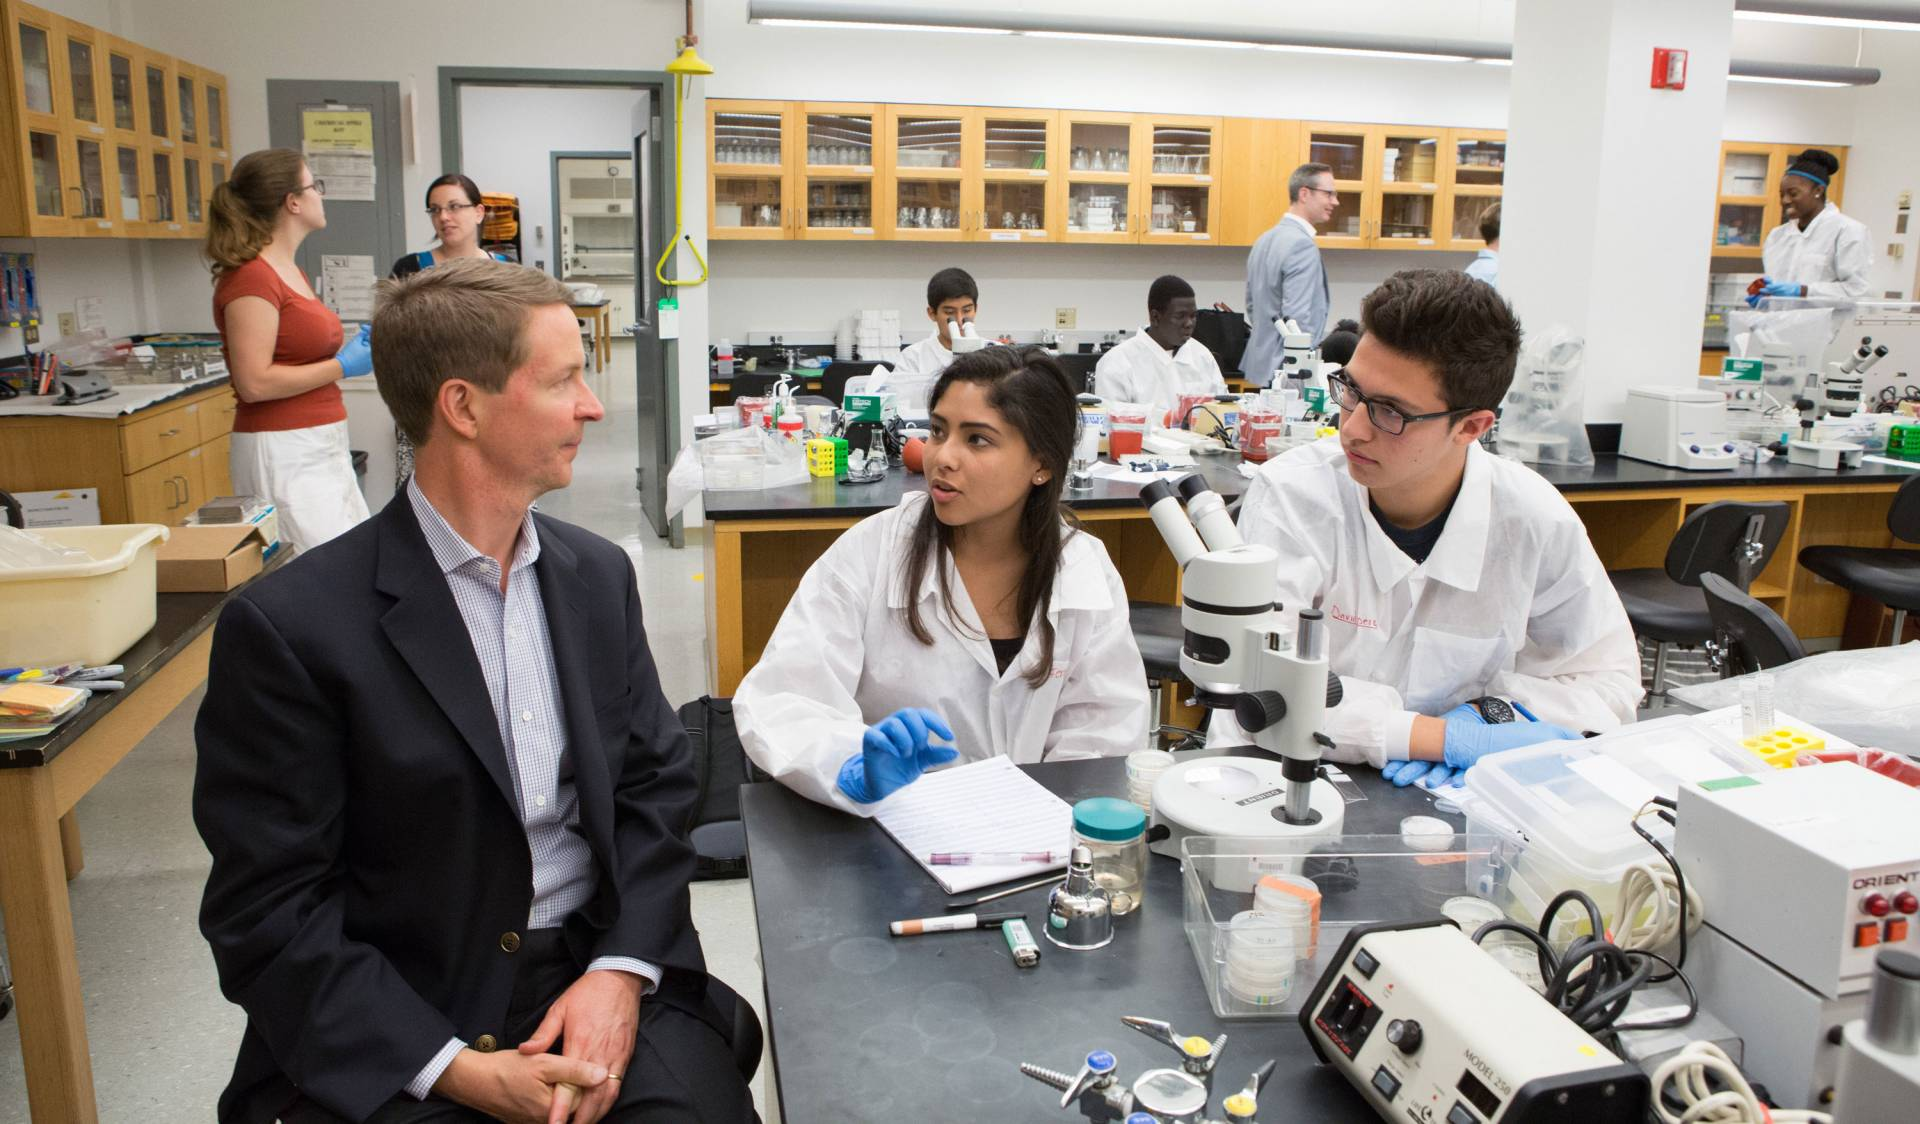 Bob Peck speaks to students while in a laboratory